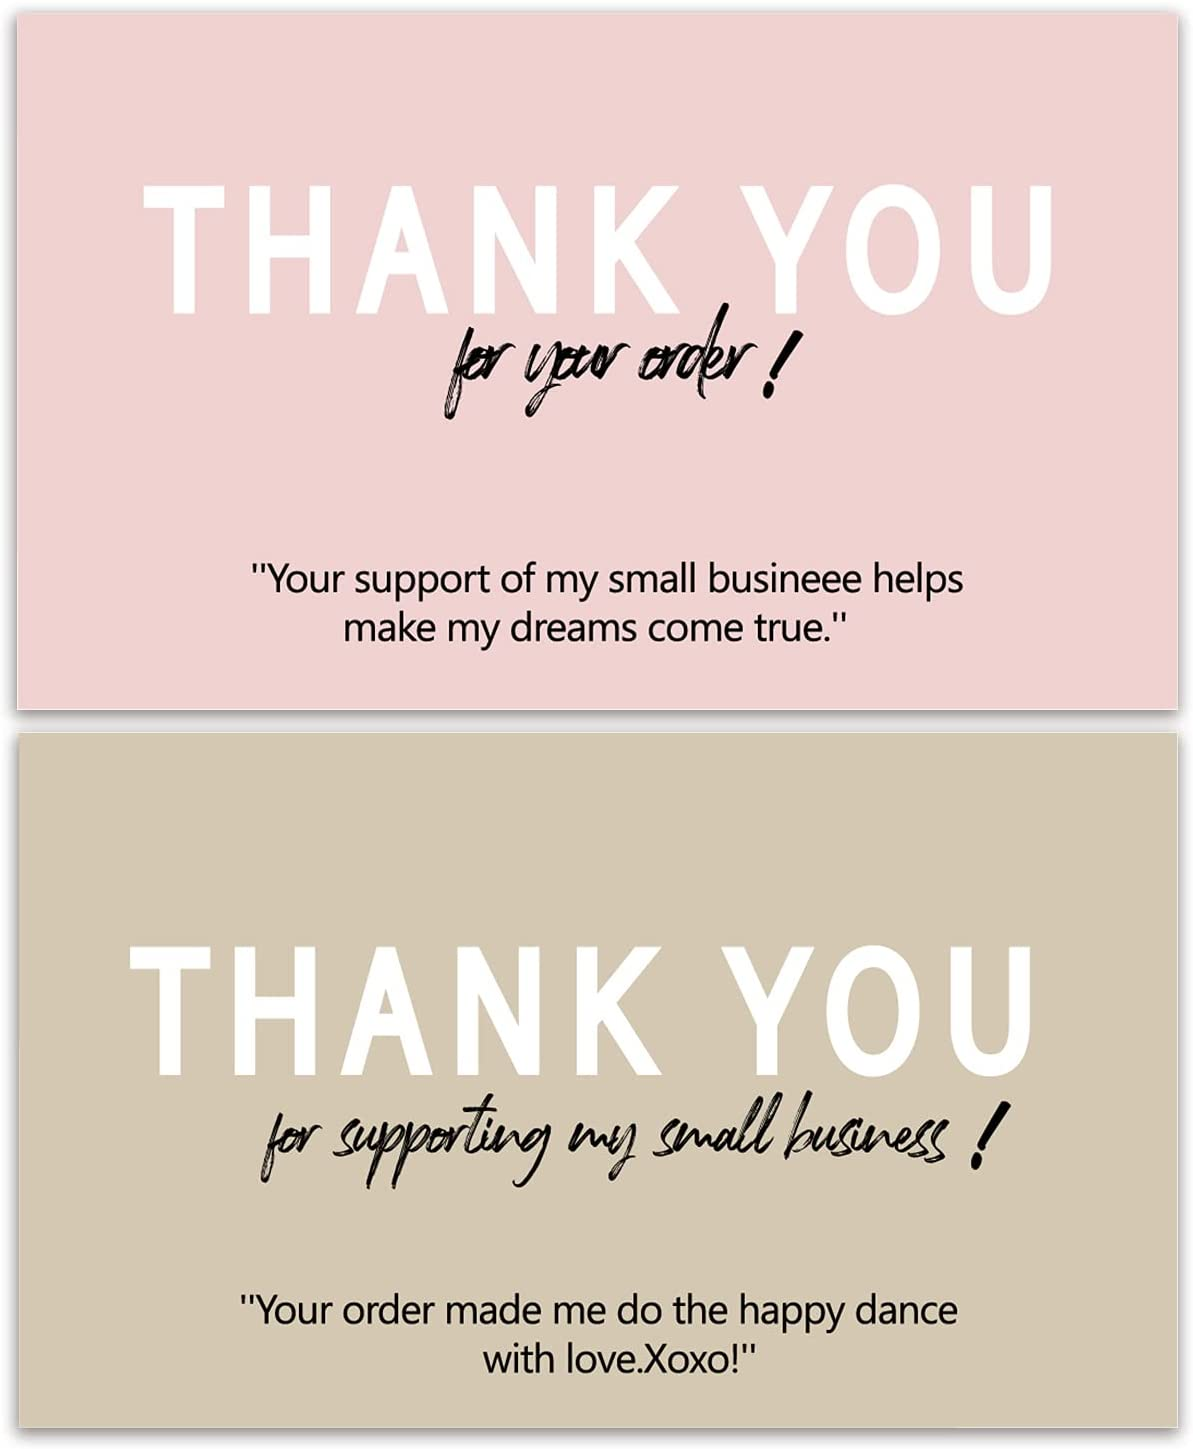 100pcs Thank you for supporting my b 2x3.5 business small Indianapolis Mall cards quality assurance